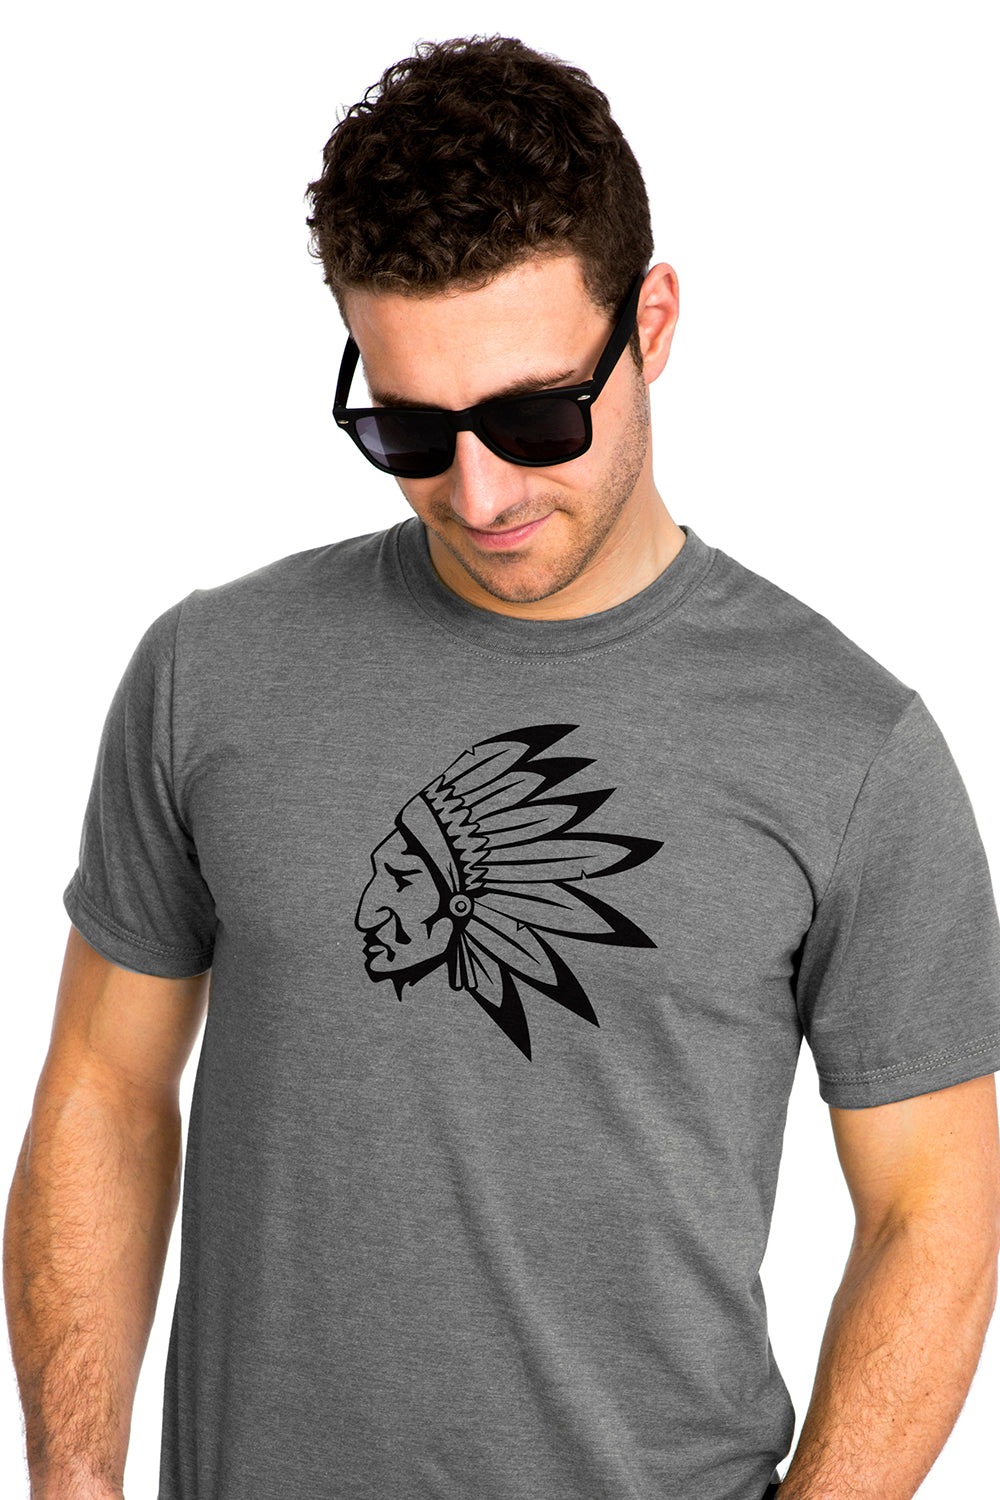 Native American Chief T-shirt